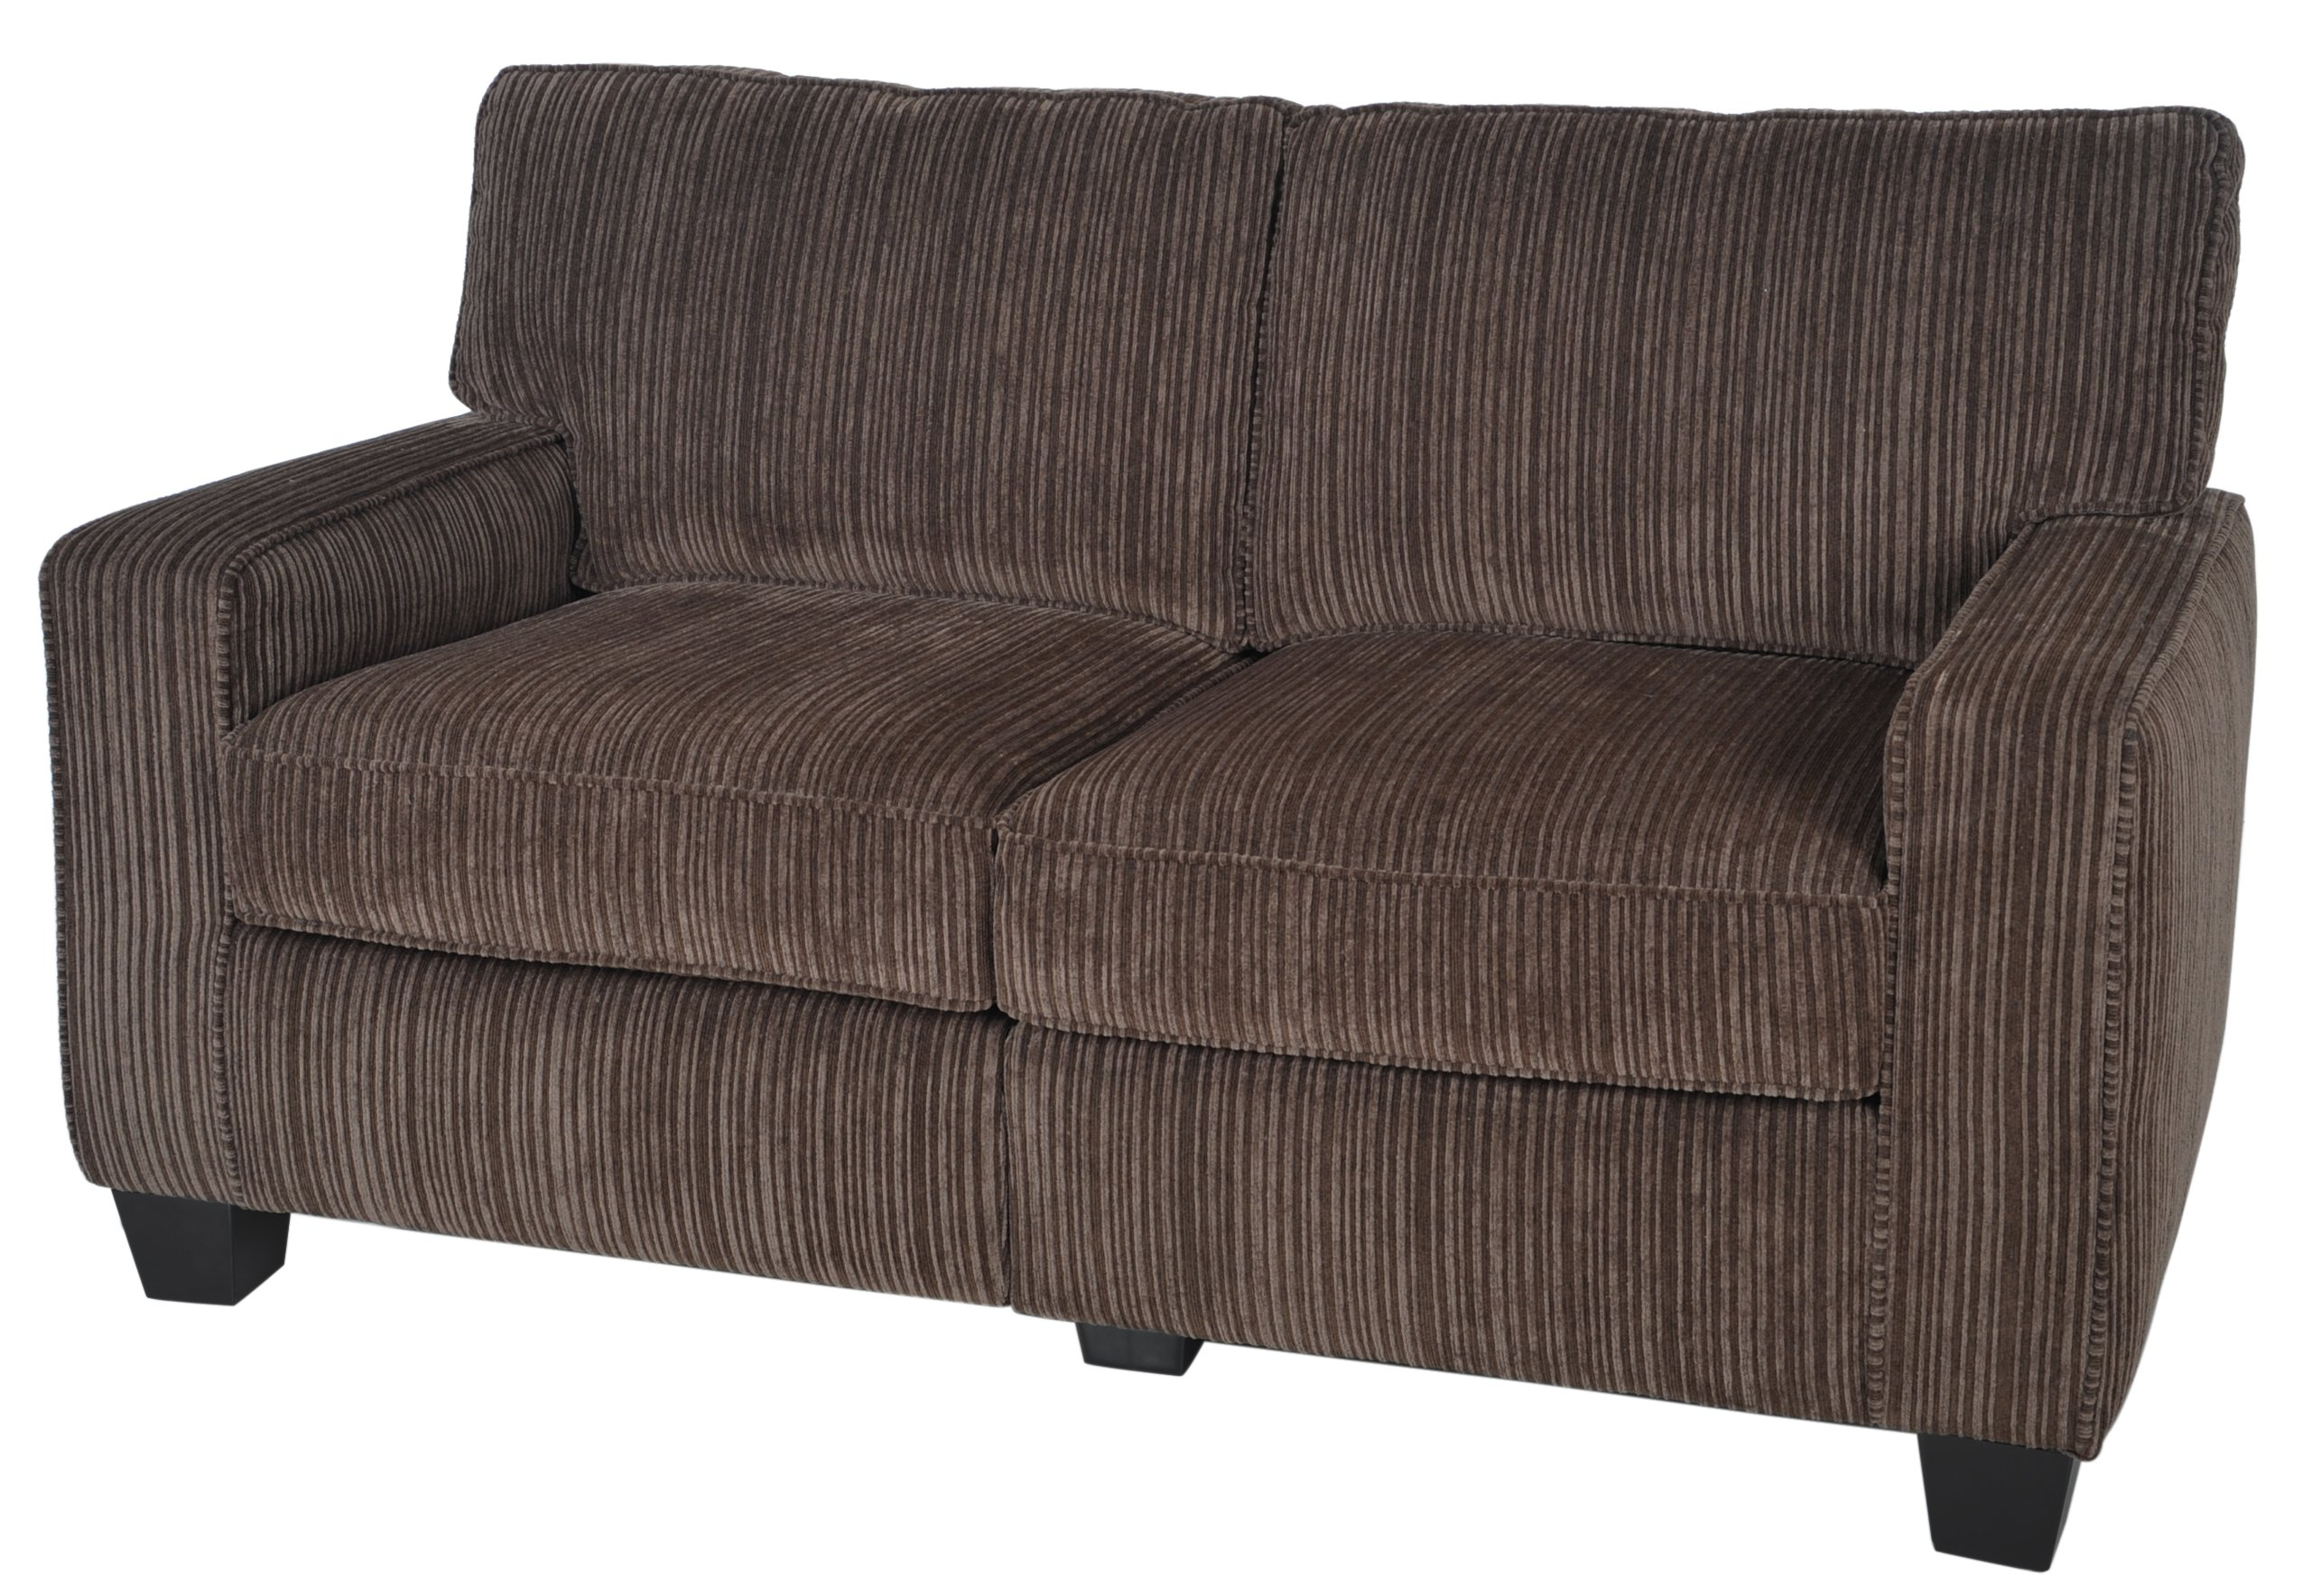 Serta RTA Palisades Collection 61'' Loveseat in Riverfront Brown by Serta (Image #8)